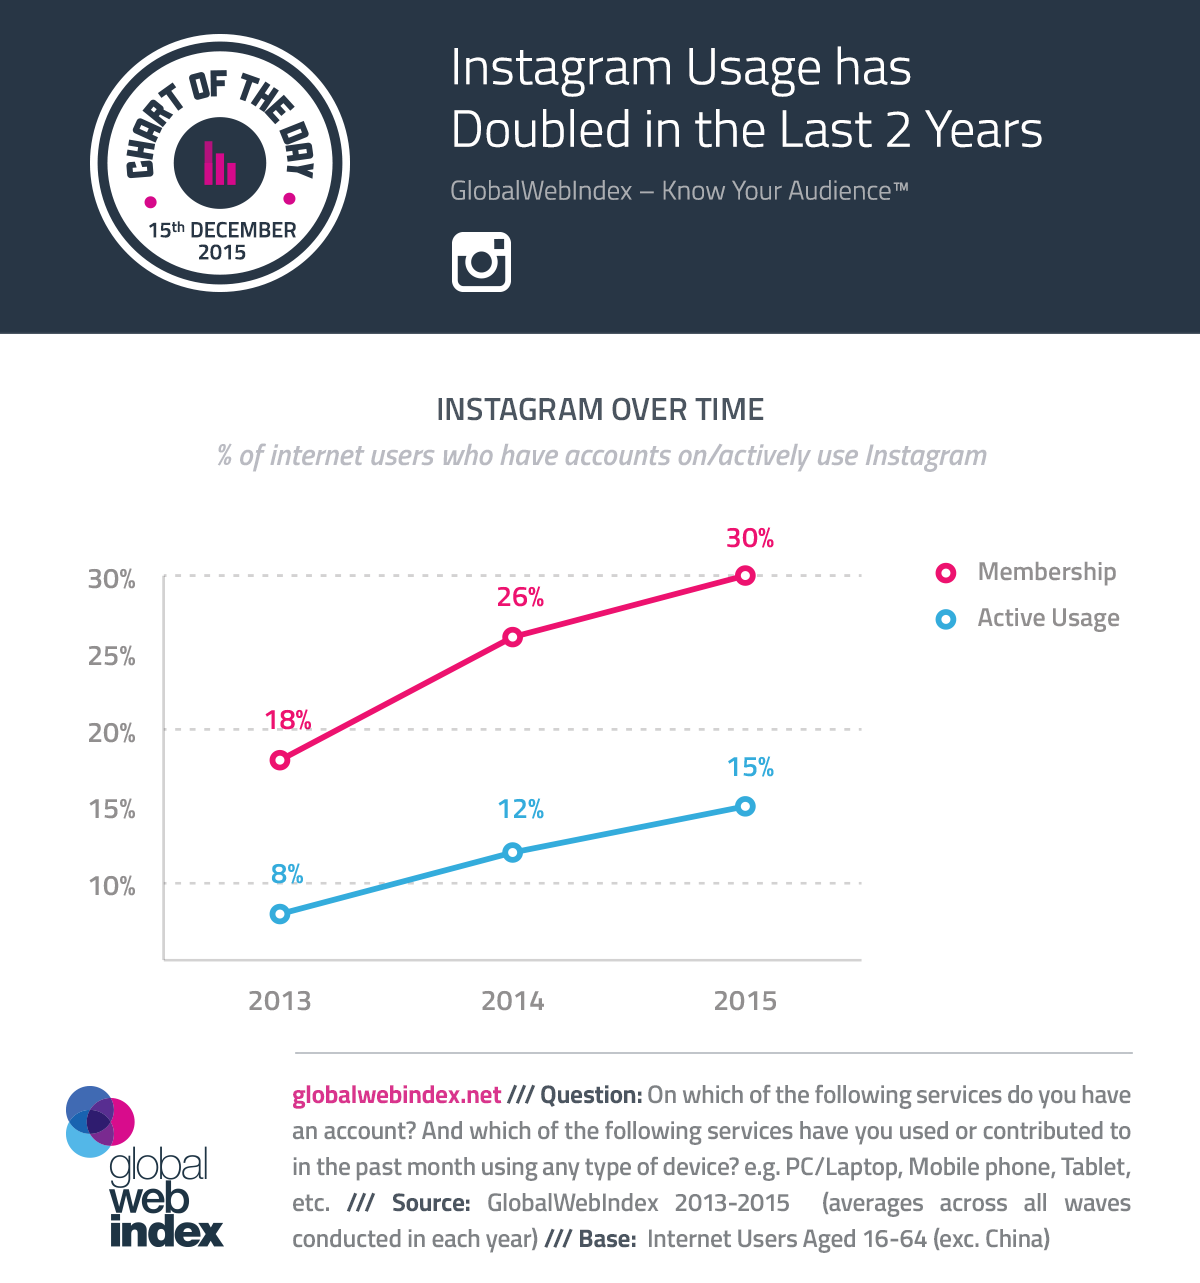 COTD-Charts-15-Dec-2015-Instagram-Usage-has-Doubled-in-the-Last-2-Years